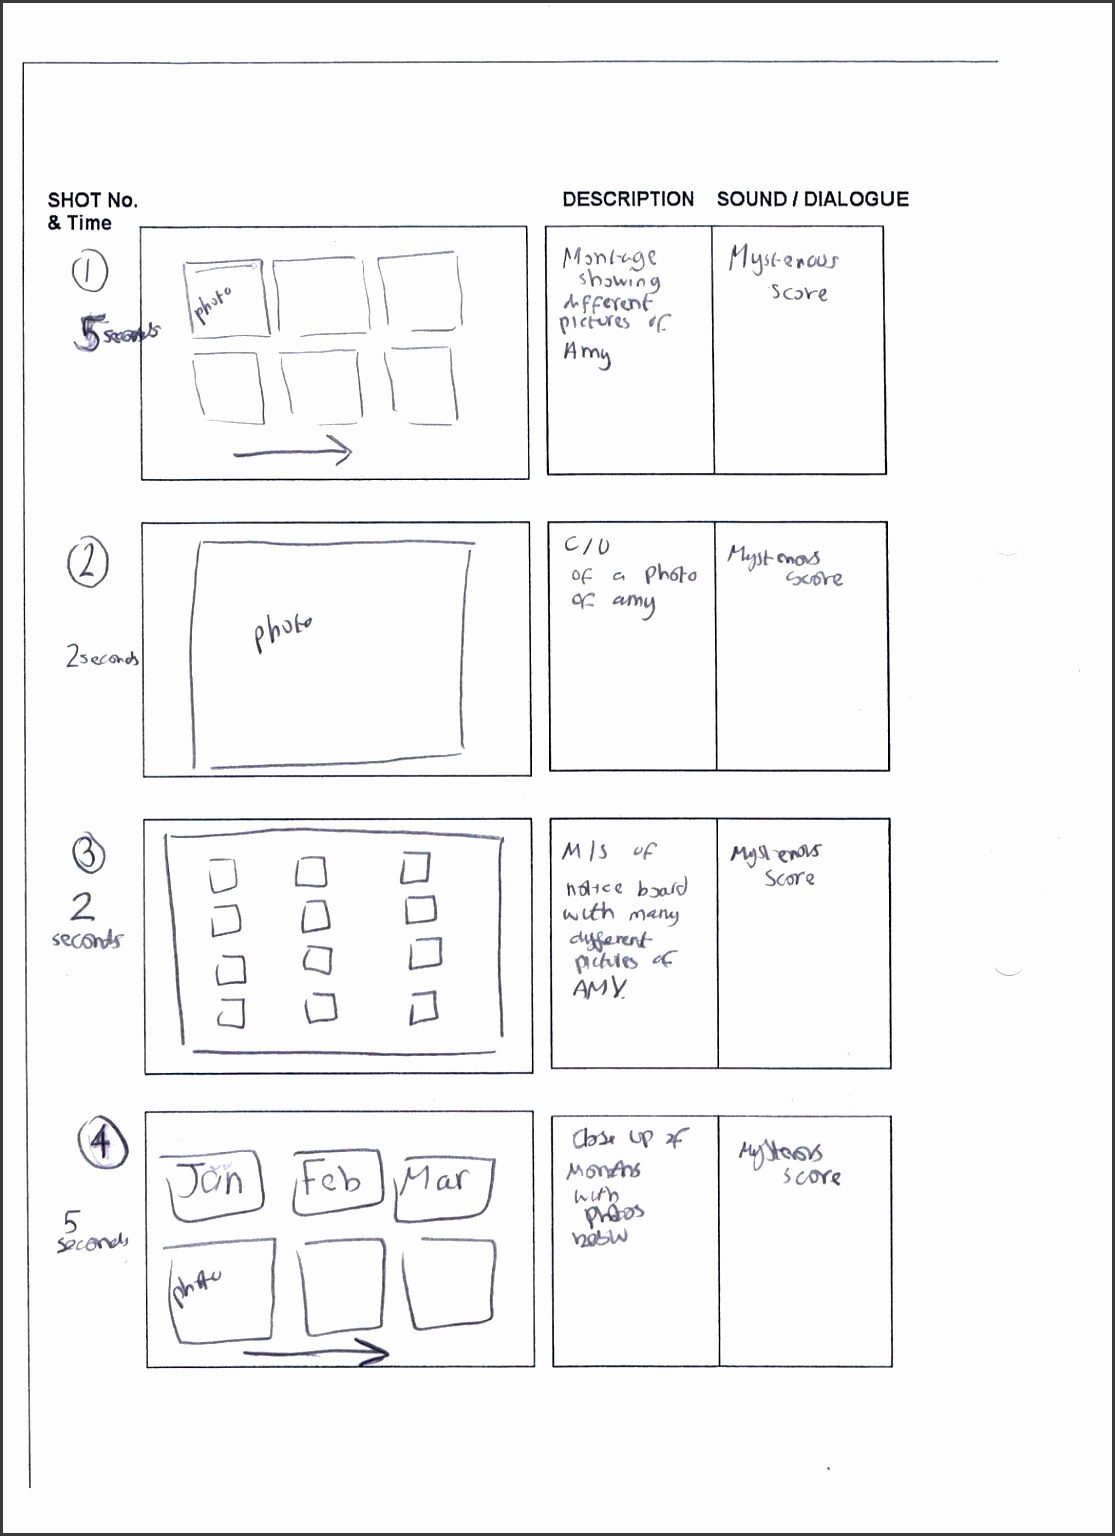 and we sat as a group to discuss how we can convey the suspense and tension in an effective way and we came up ideas shown though storyboard draft